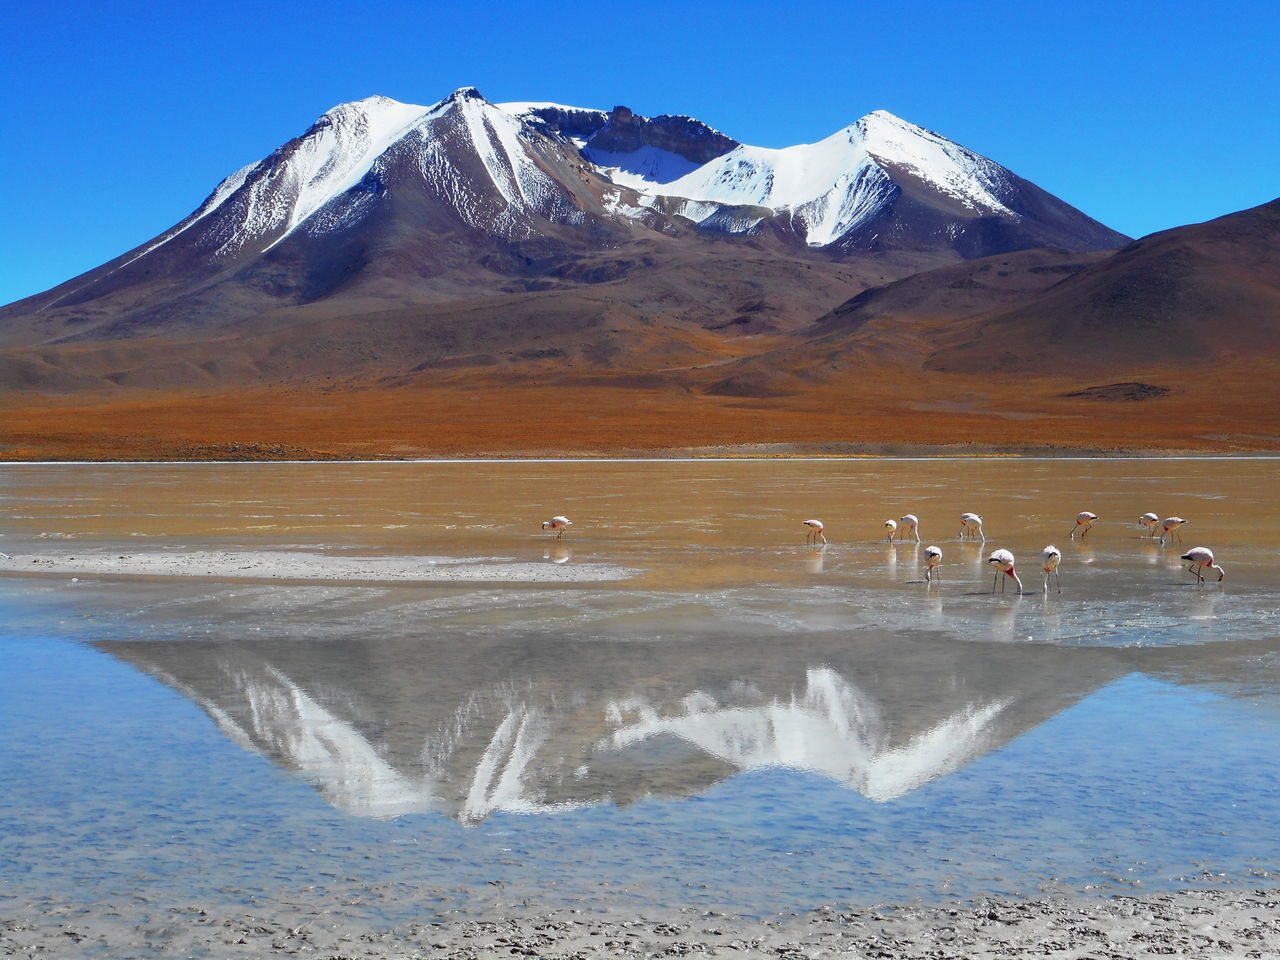 Bolivia Cold Temperature Crystal Clear Waters Day Flamingo Lake Landscape Mountain Mountain Peak Mountain Range Nature No People Outdoors Reflection Scenics Snow Water